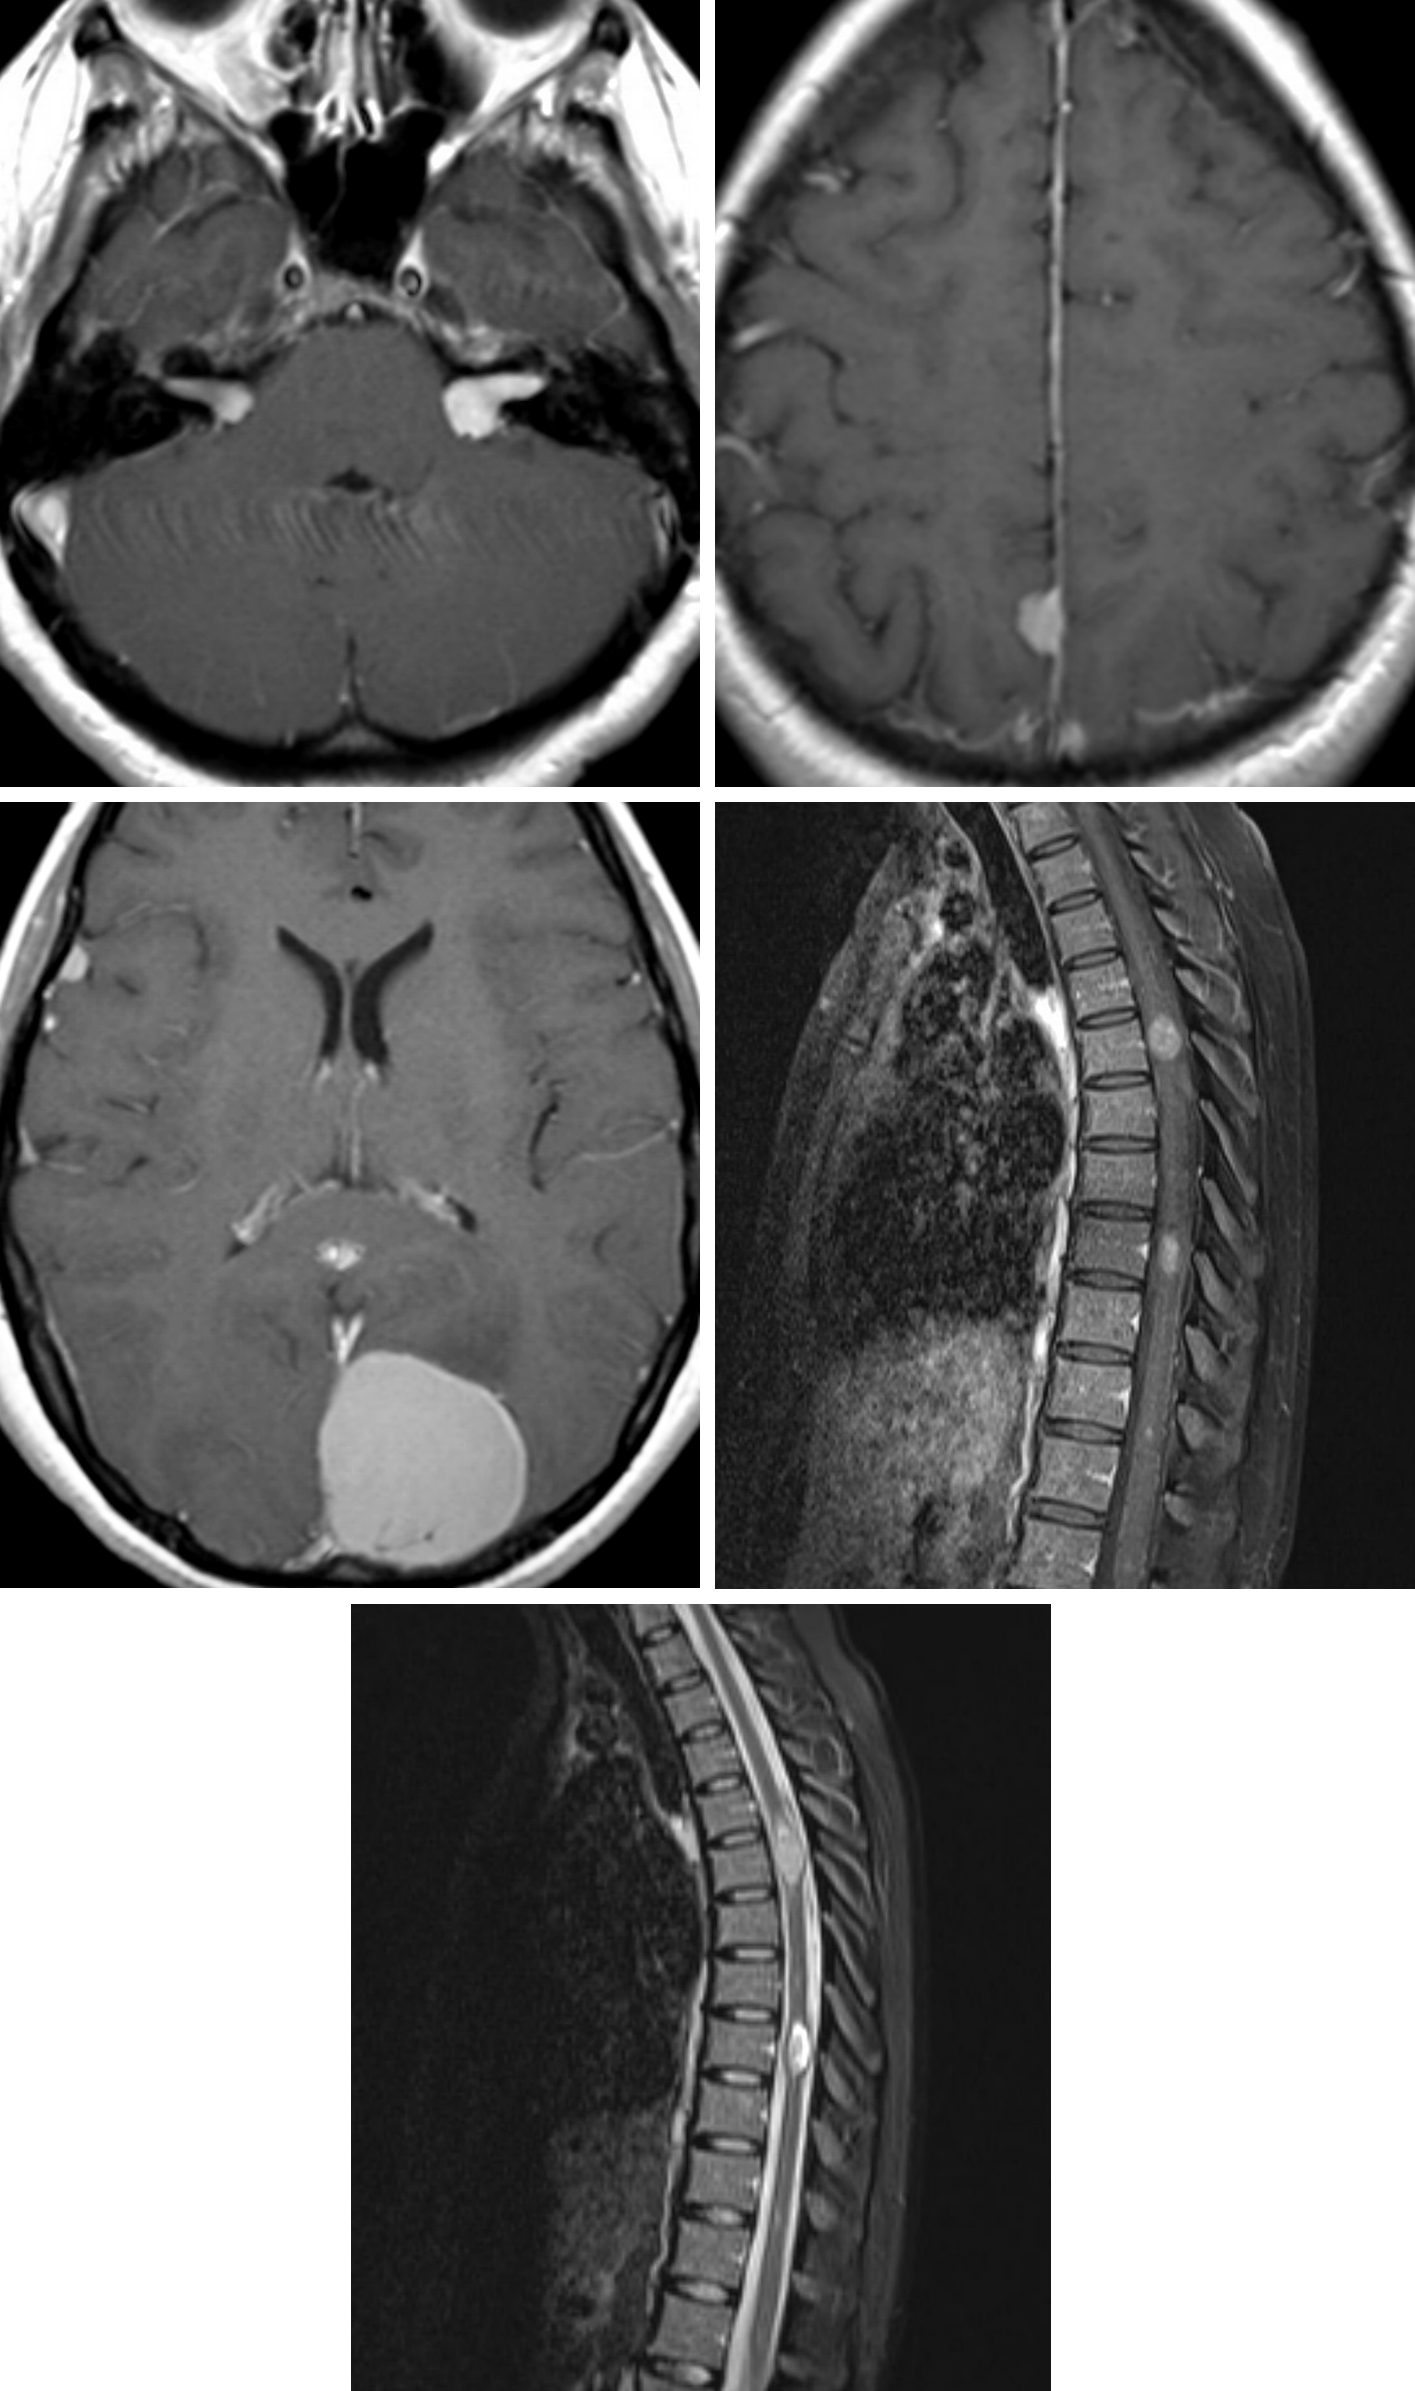 Figure 2: Axial T1-weighted postcontrast images demonstrate bilateral vestibular schwannomas (top left) and meningiomas (top right and middle left). Sagittal T1-weighted postcontrast (middle right) and T2-weighted (bottom) images demonstrate enhancing, expansile, centrally located intramedullary lesions within the spinal cord compatible with ependymomas in this patient with NF2.